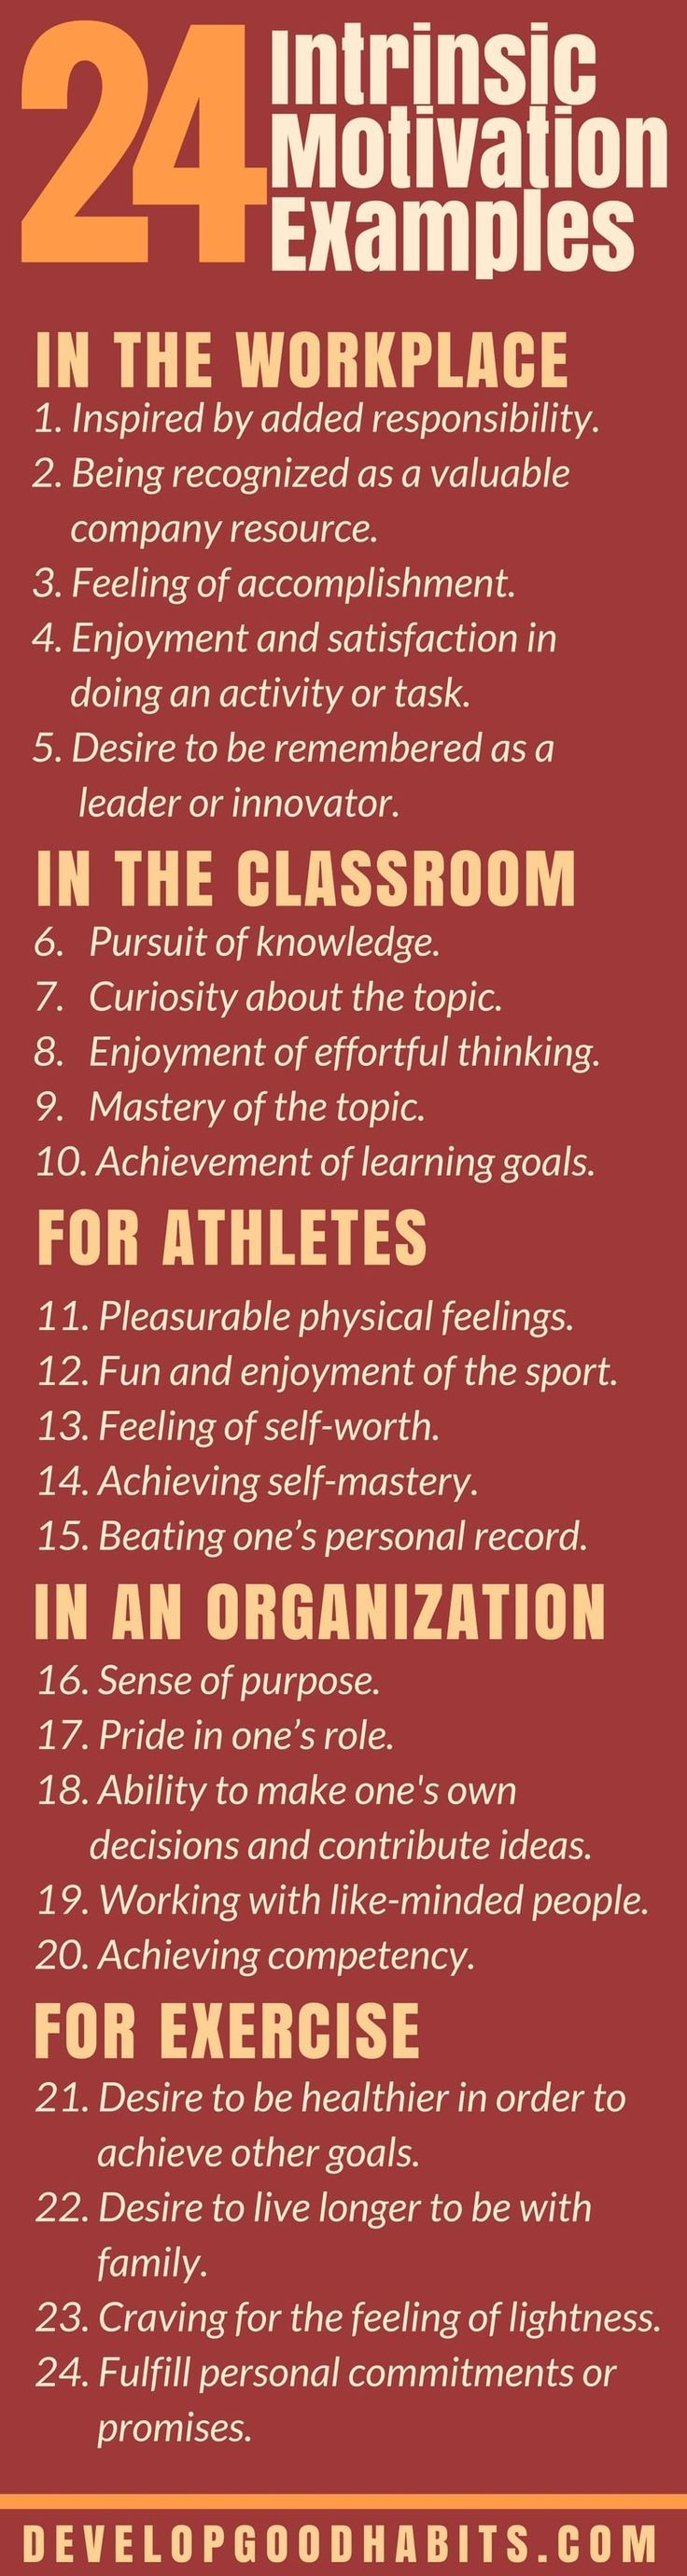 24 intrinsic motivation examples in the workplace sports and the